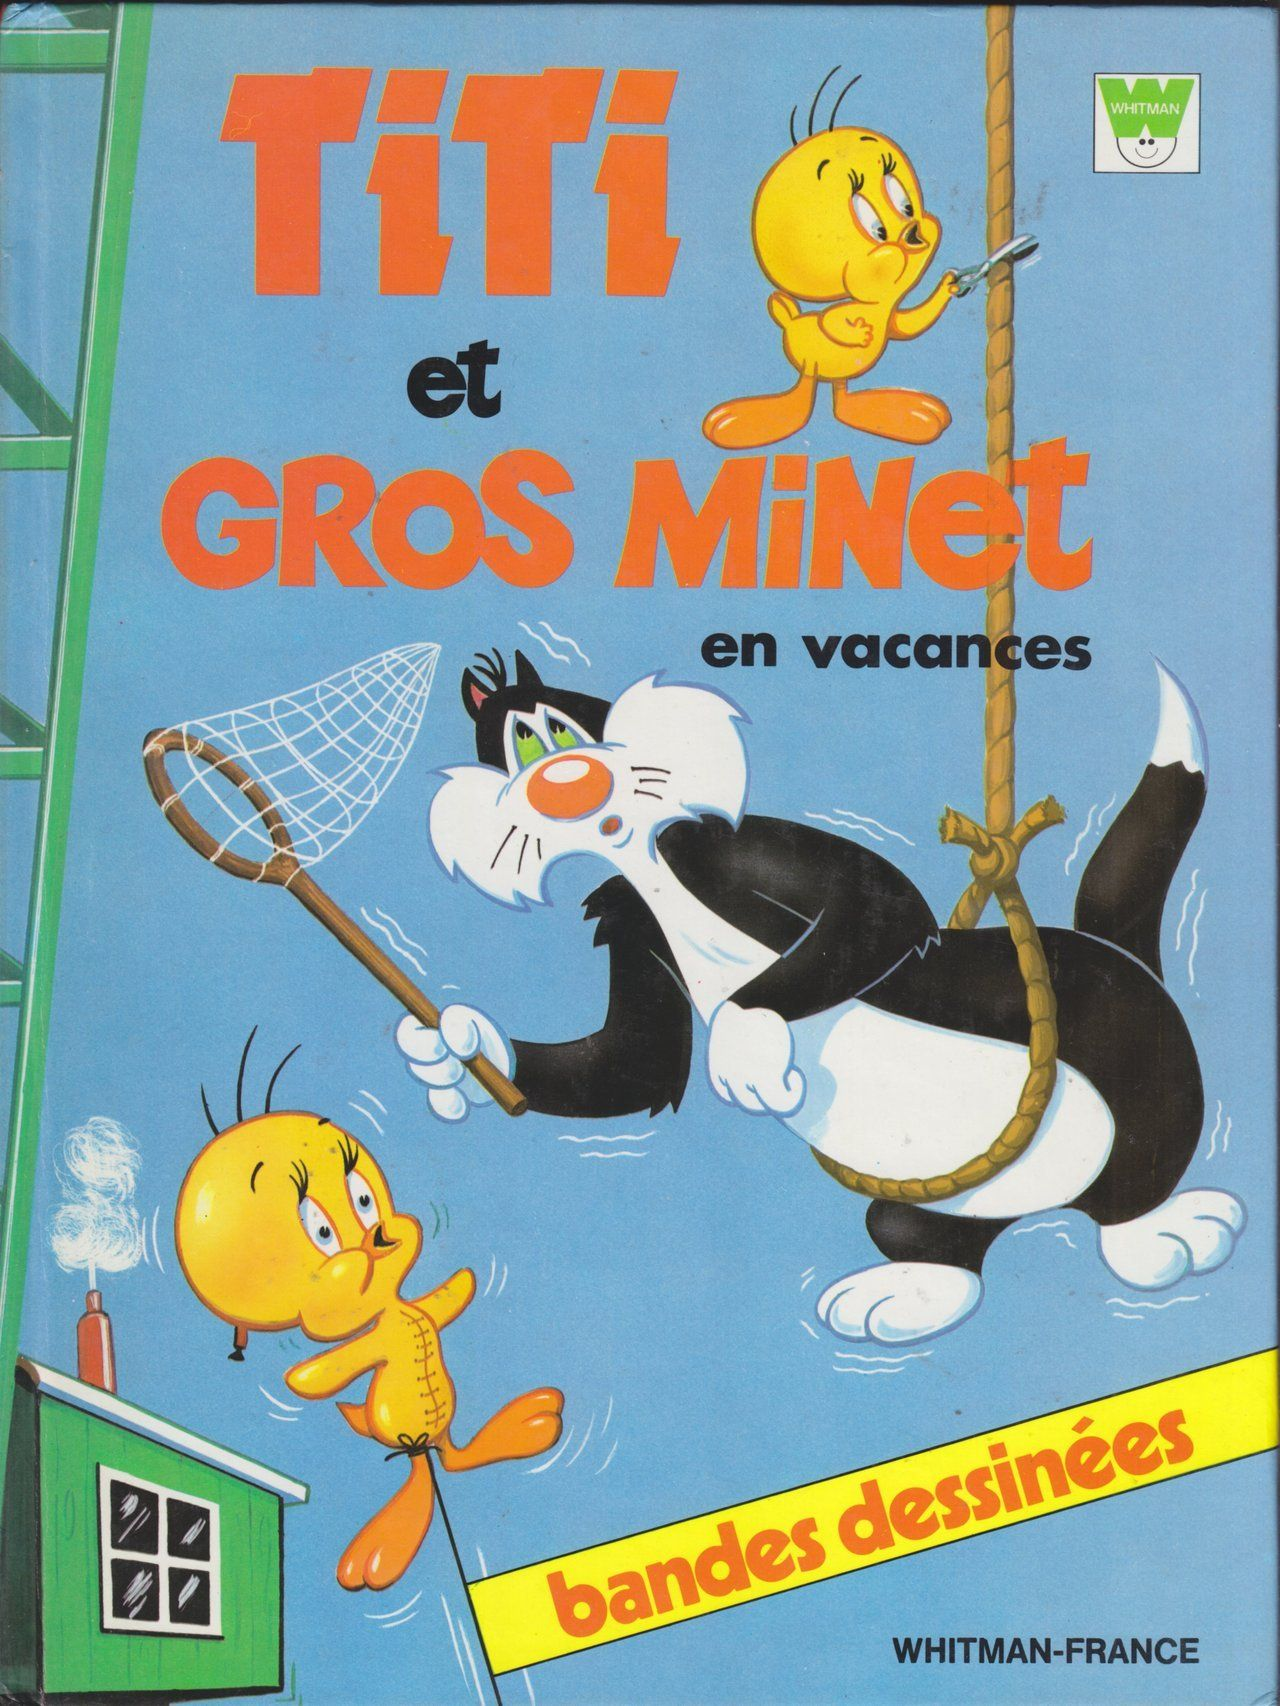 Titi Et Gros Minet : minet, Title:, Minet, VacancesSeries:, Whitman, France, Story, Books, Characters:, Tweety,, Sylvester,, Granny, Creators:, Unkn…, Characters